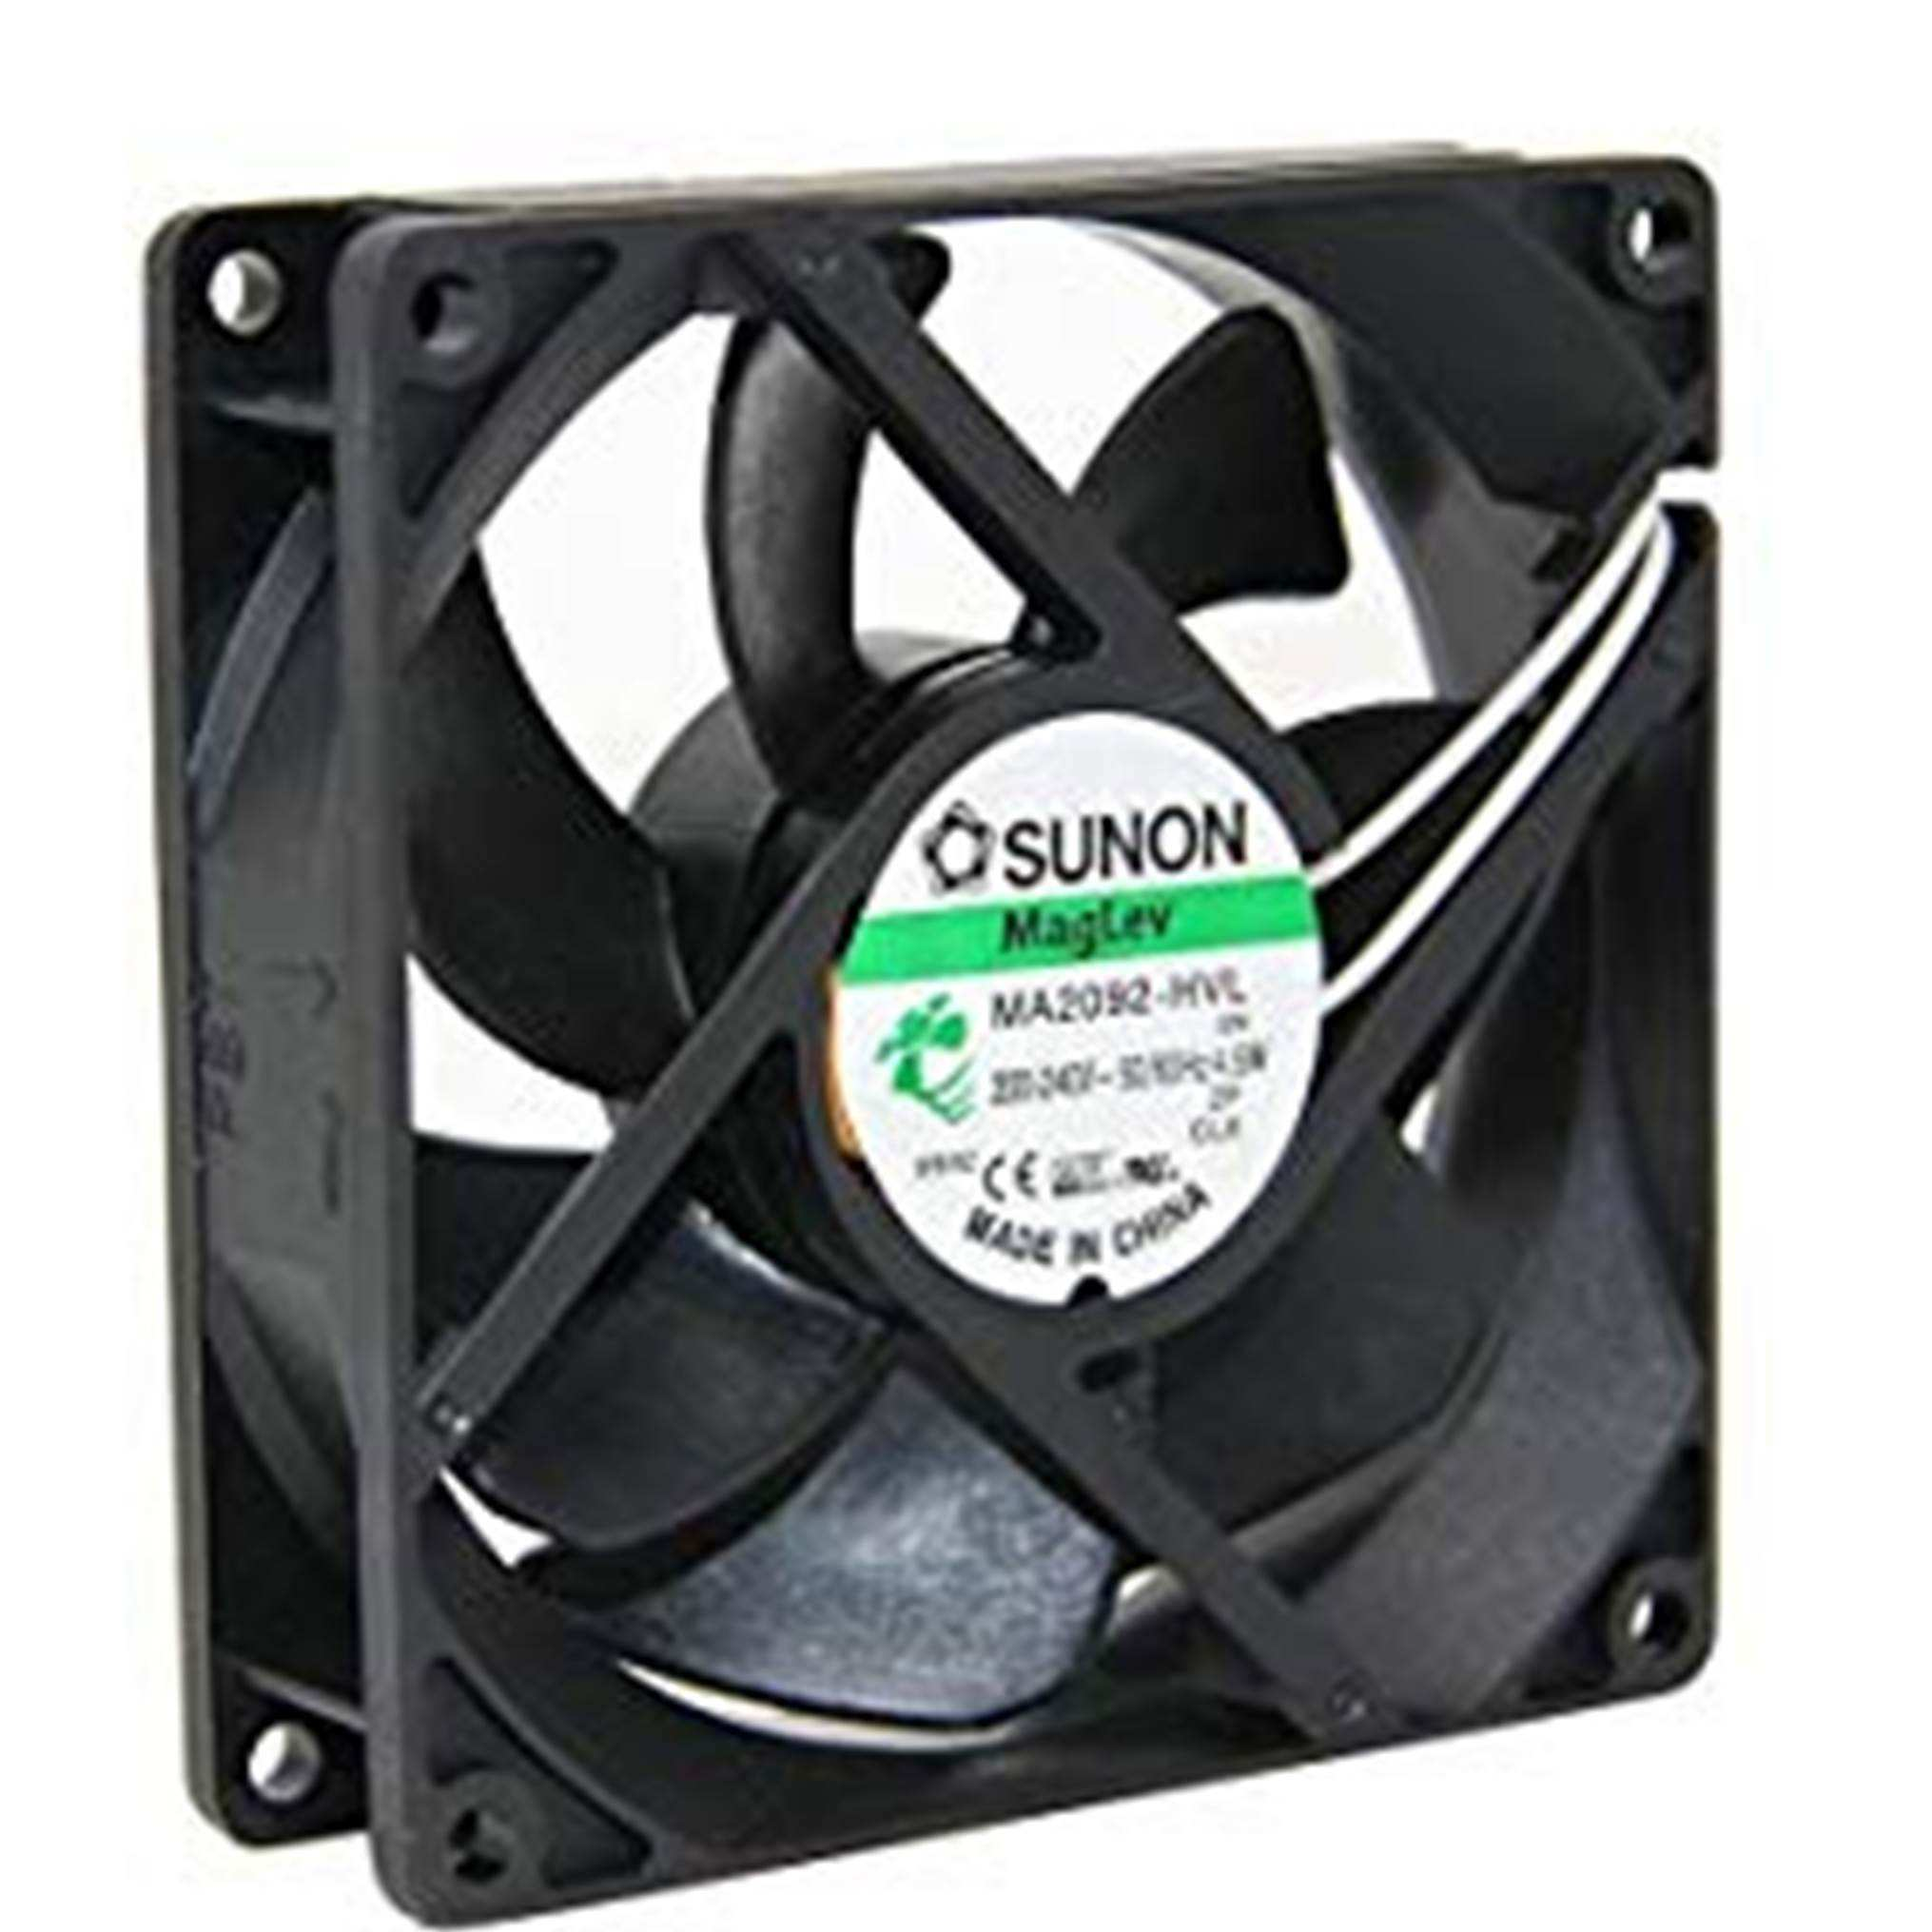 SP101A 1123HBL GN SUNON Axial 220V ac cooling mini fan